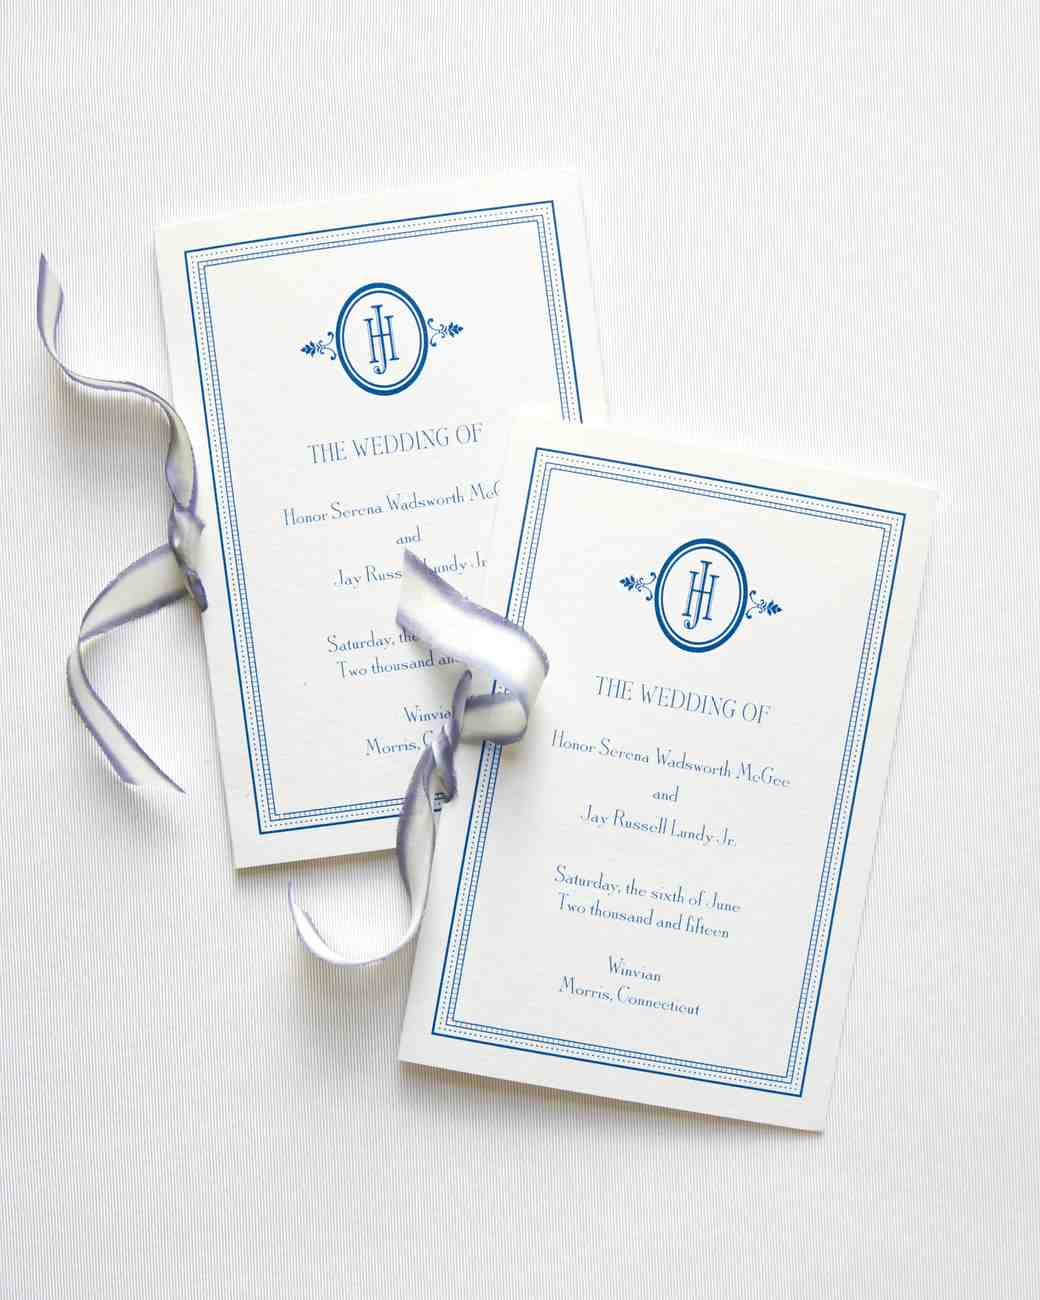 mhonor-jay-wedding-connecticut-blue-invitations-002-d112238.jpg